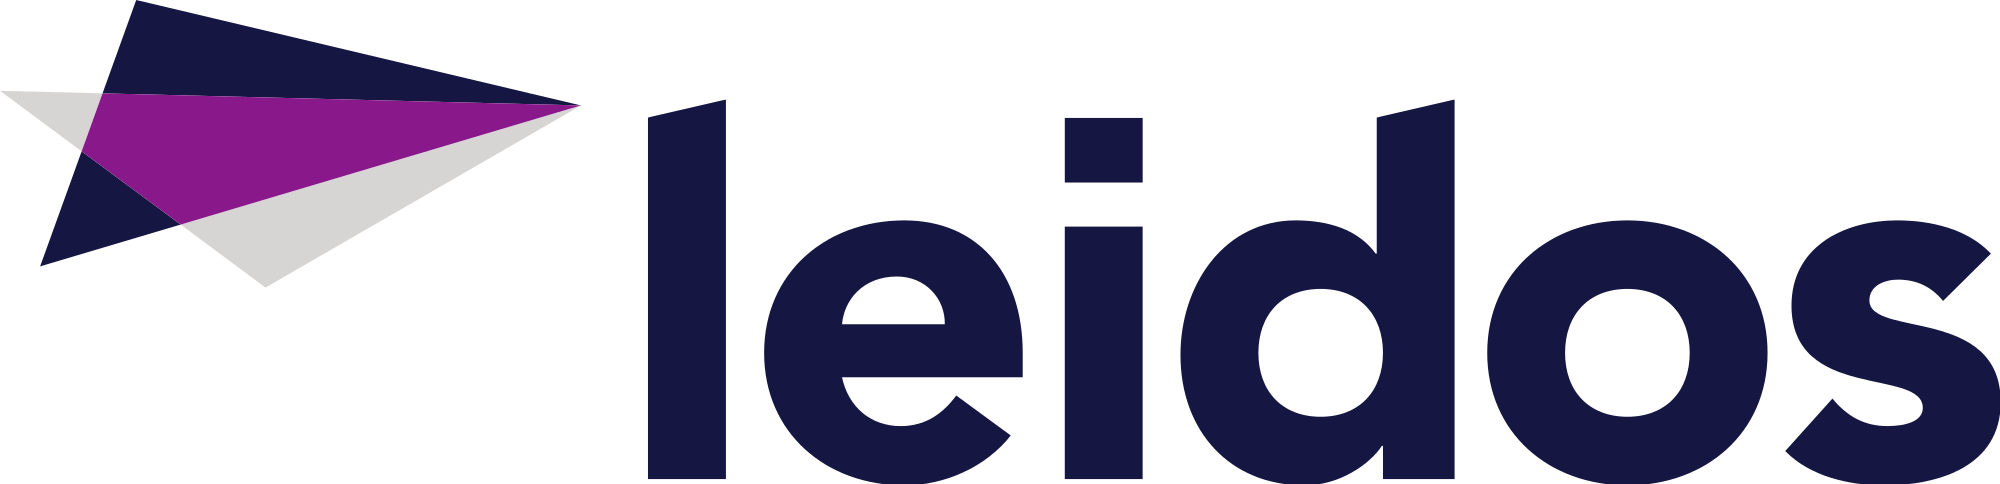 Leidos awarded DARPA contract to develop advanced protective equipment for U.S. Military